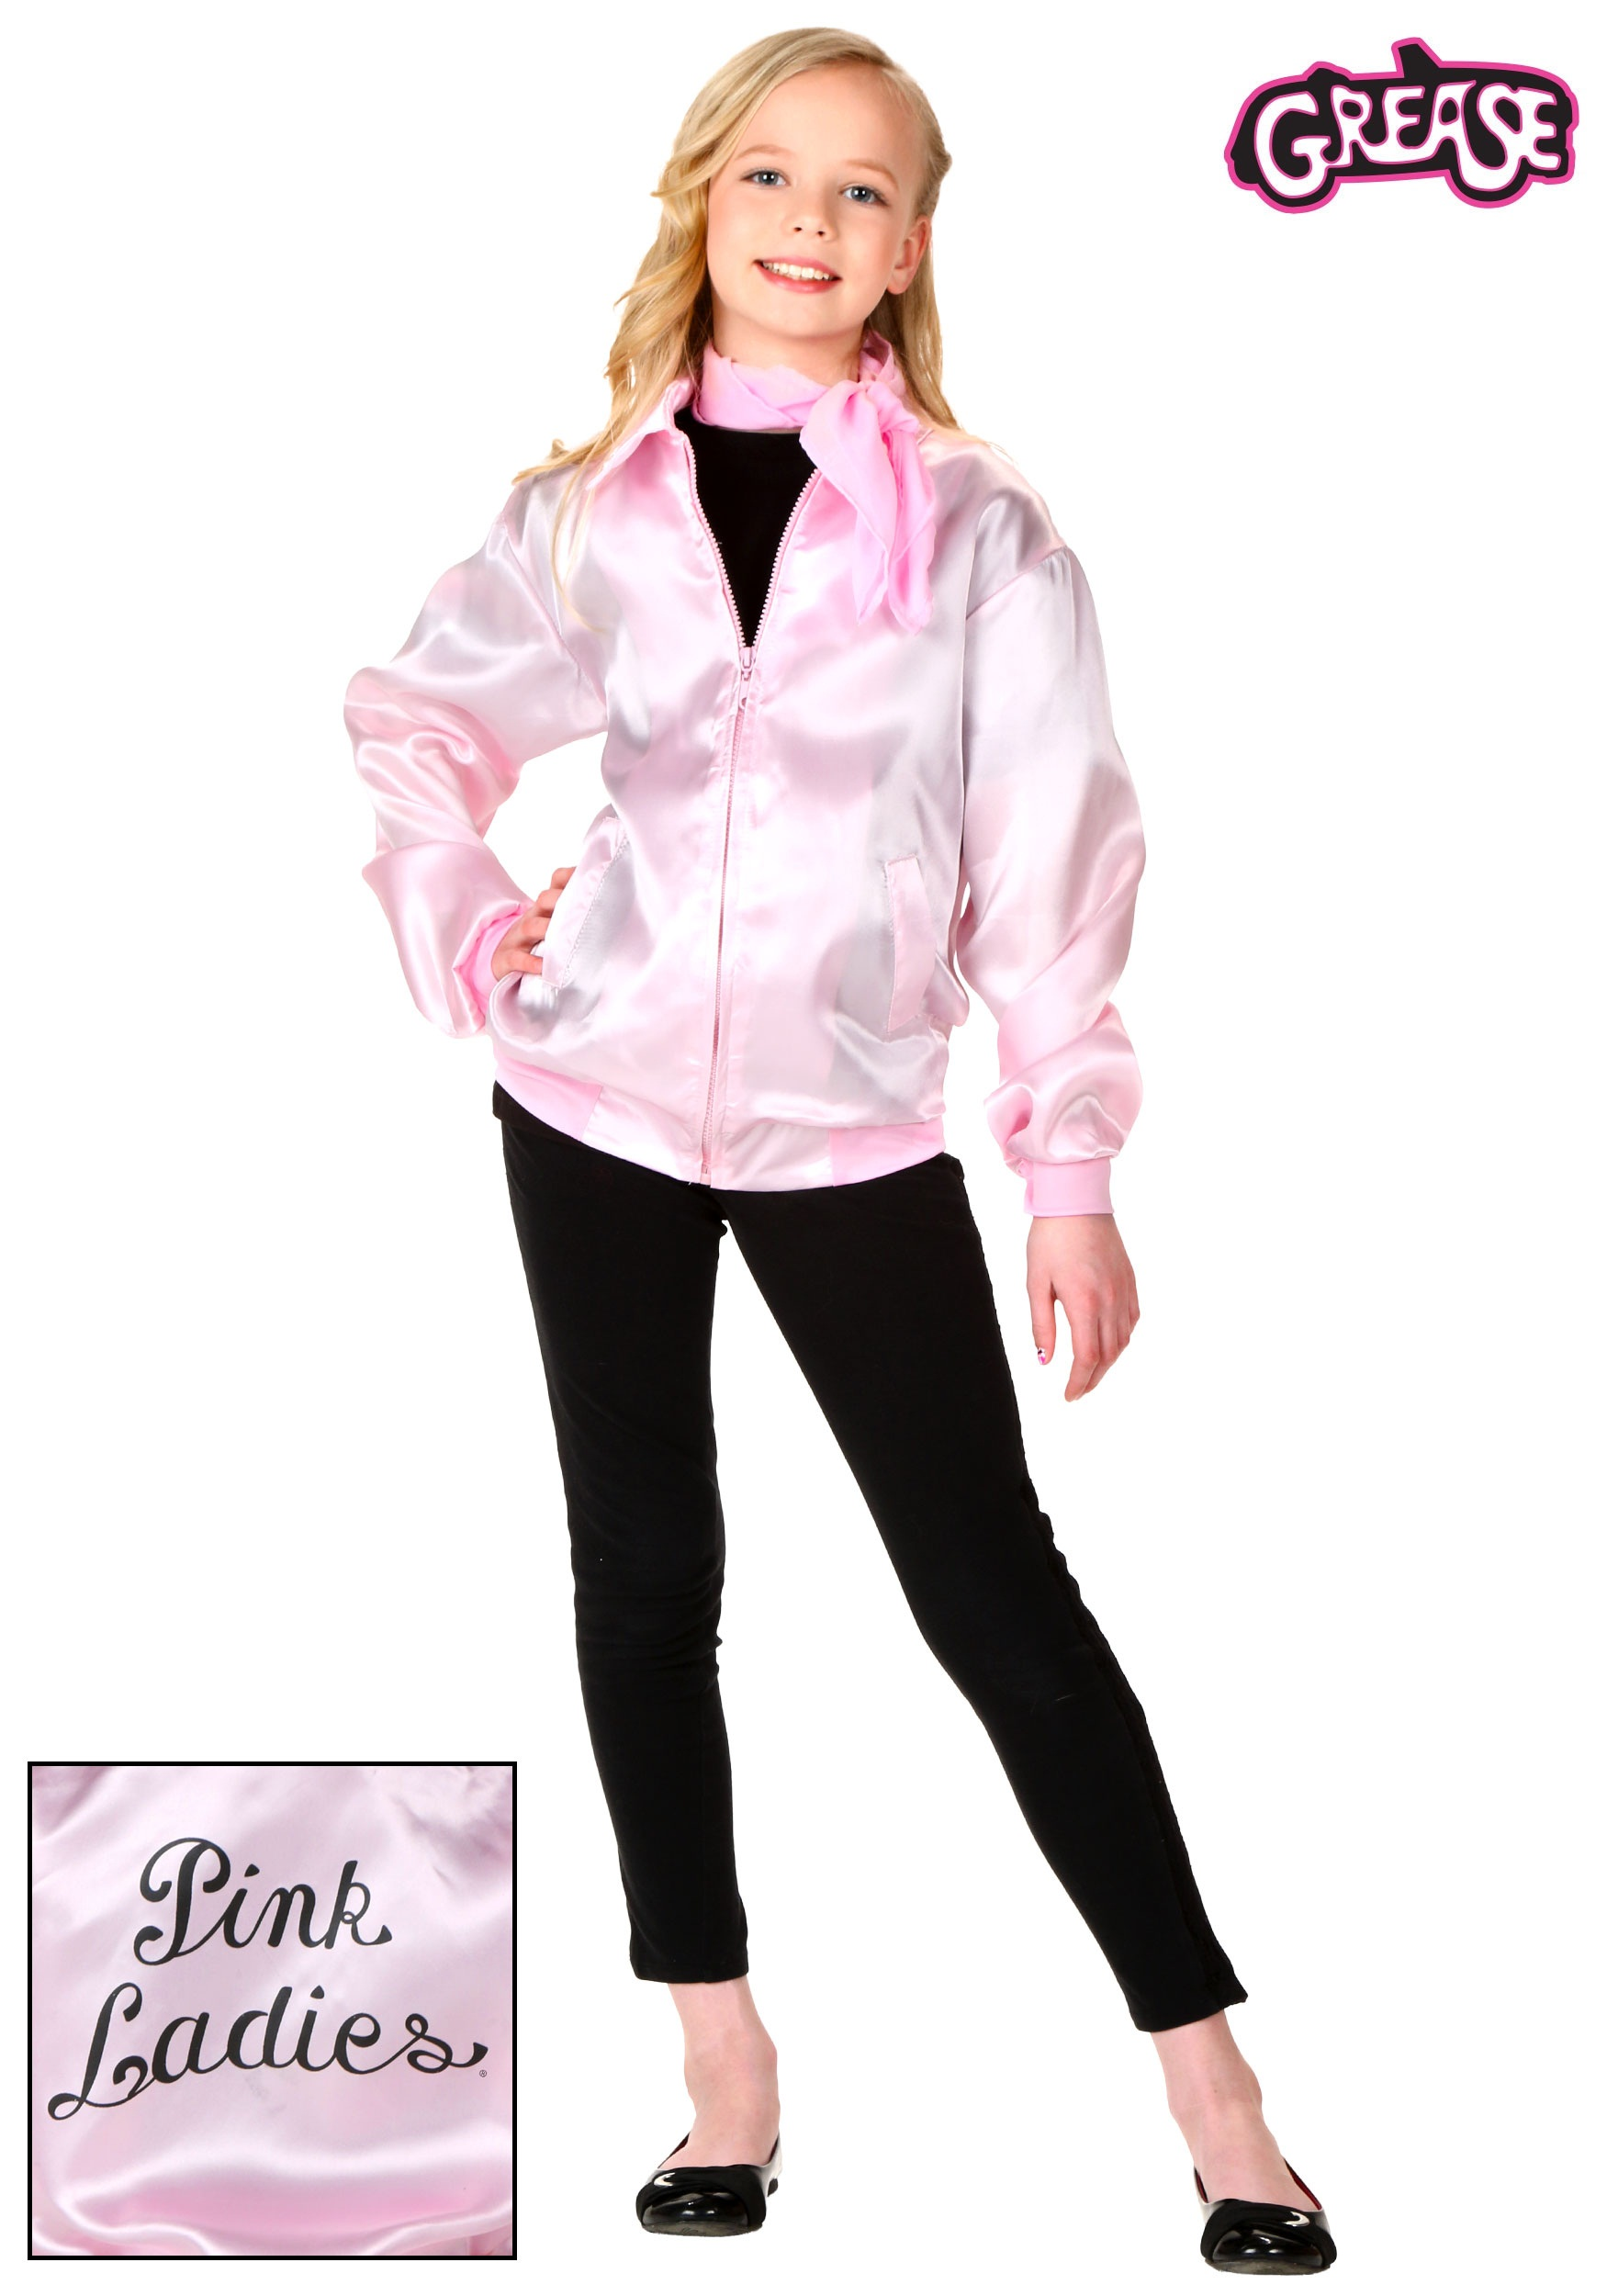 ... - Grease Pink Ladies Jacket Nearly New Pink Ladies Grease Jacket